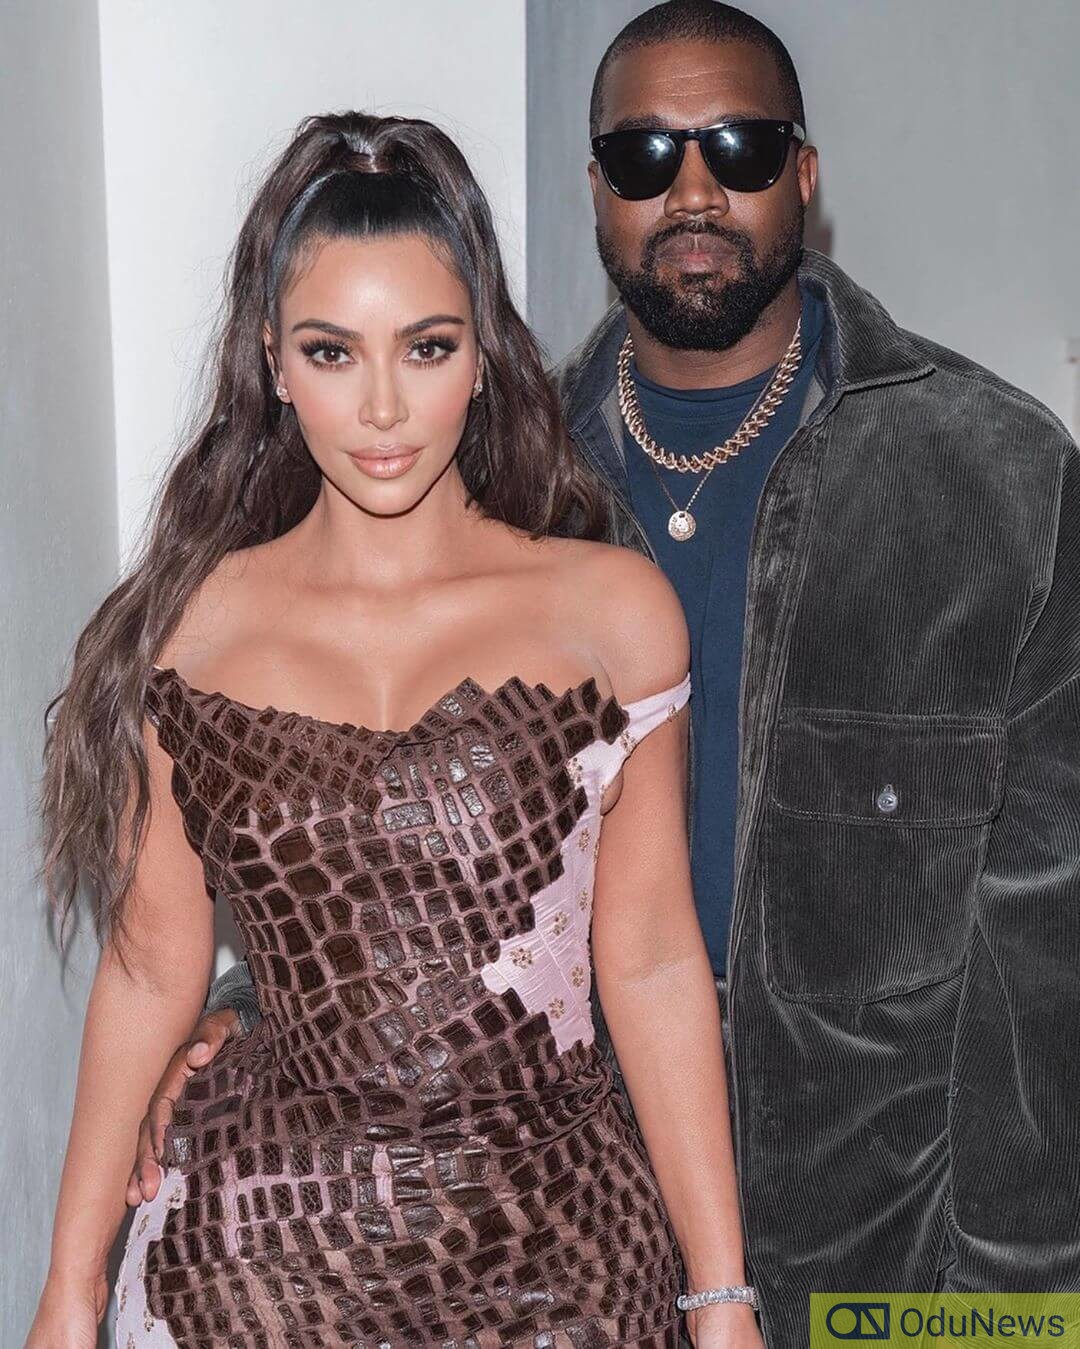 Kim and Kanye always make a major fashion statement whenever they go out together